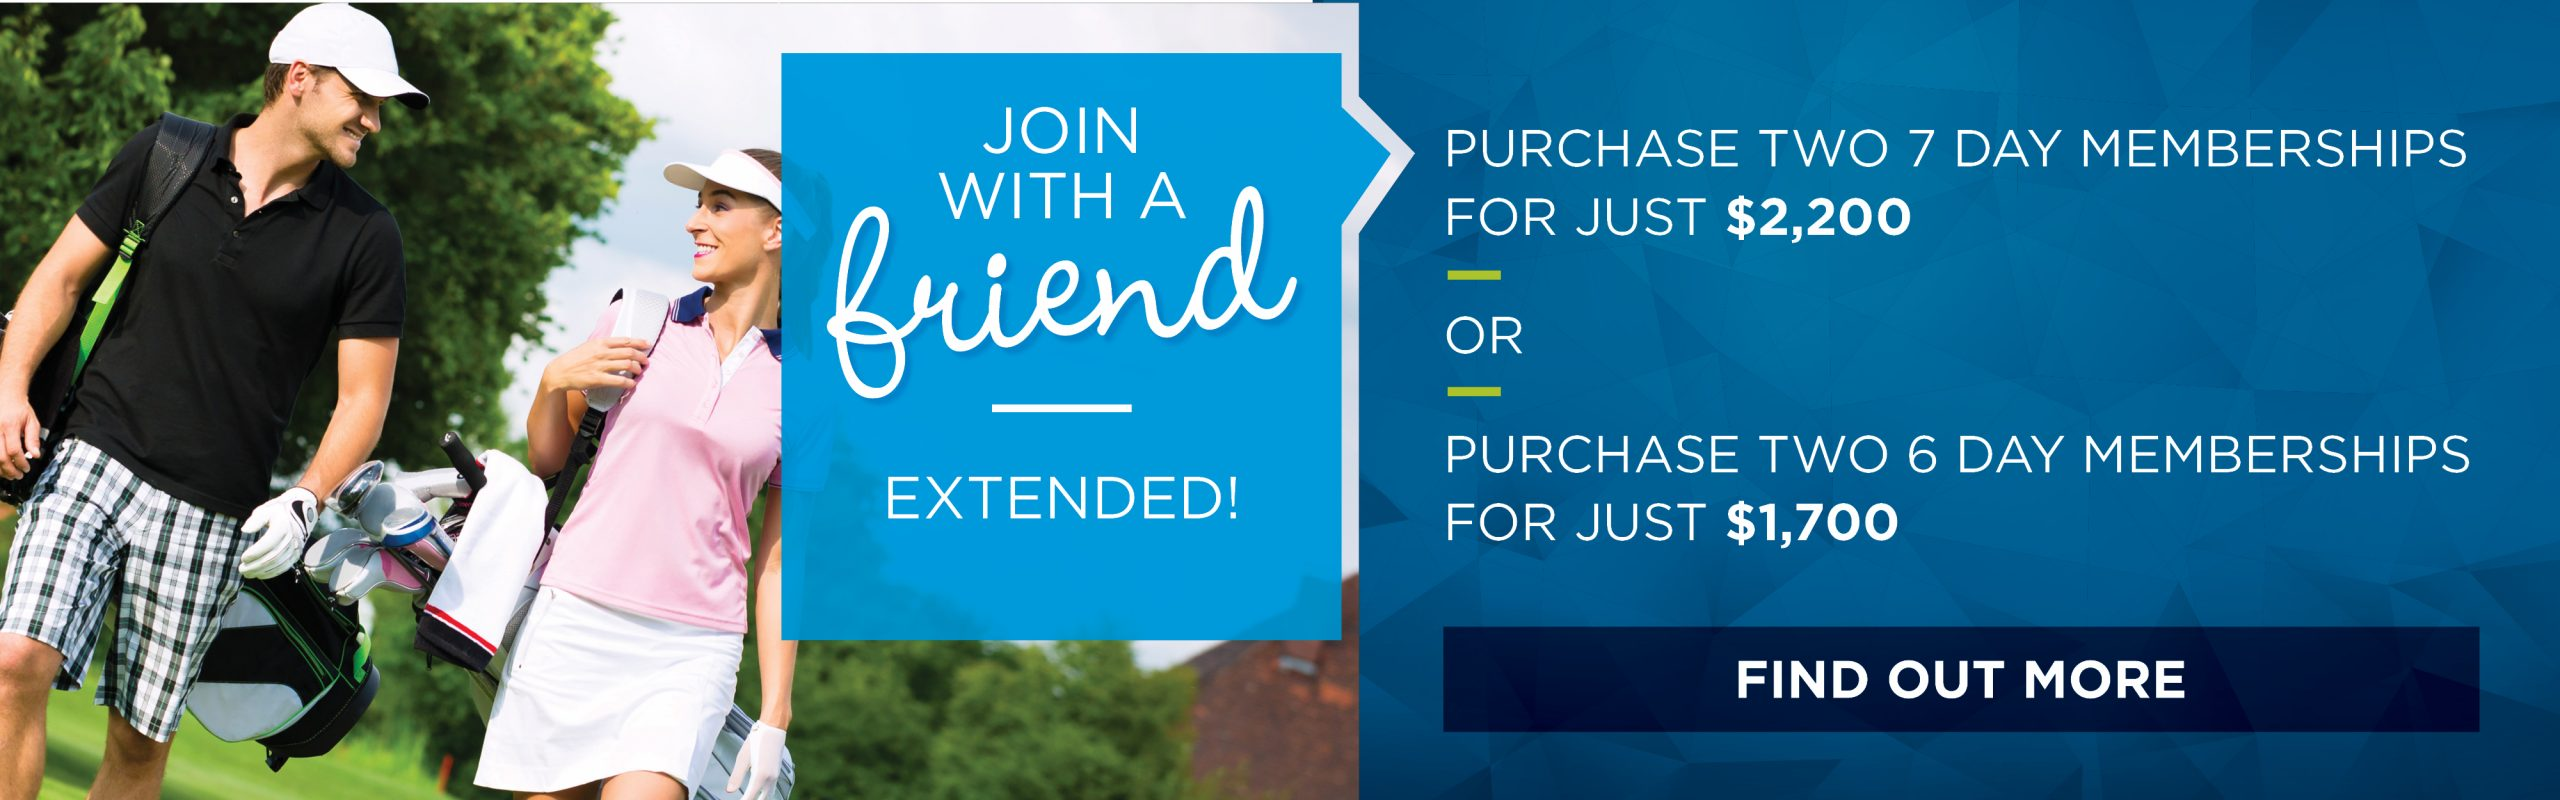 FA_2021_02_23_CGC_JoinWithAFriend_Promo EXTENDED!